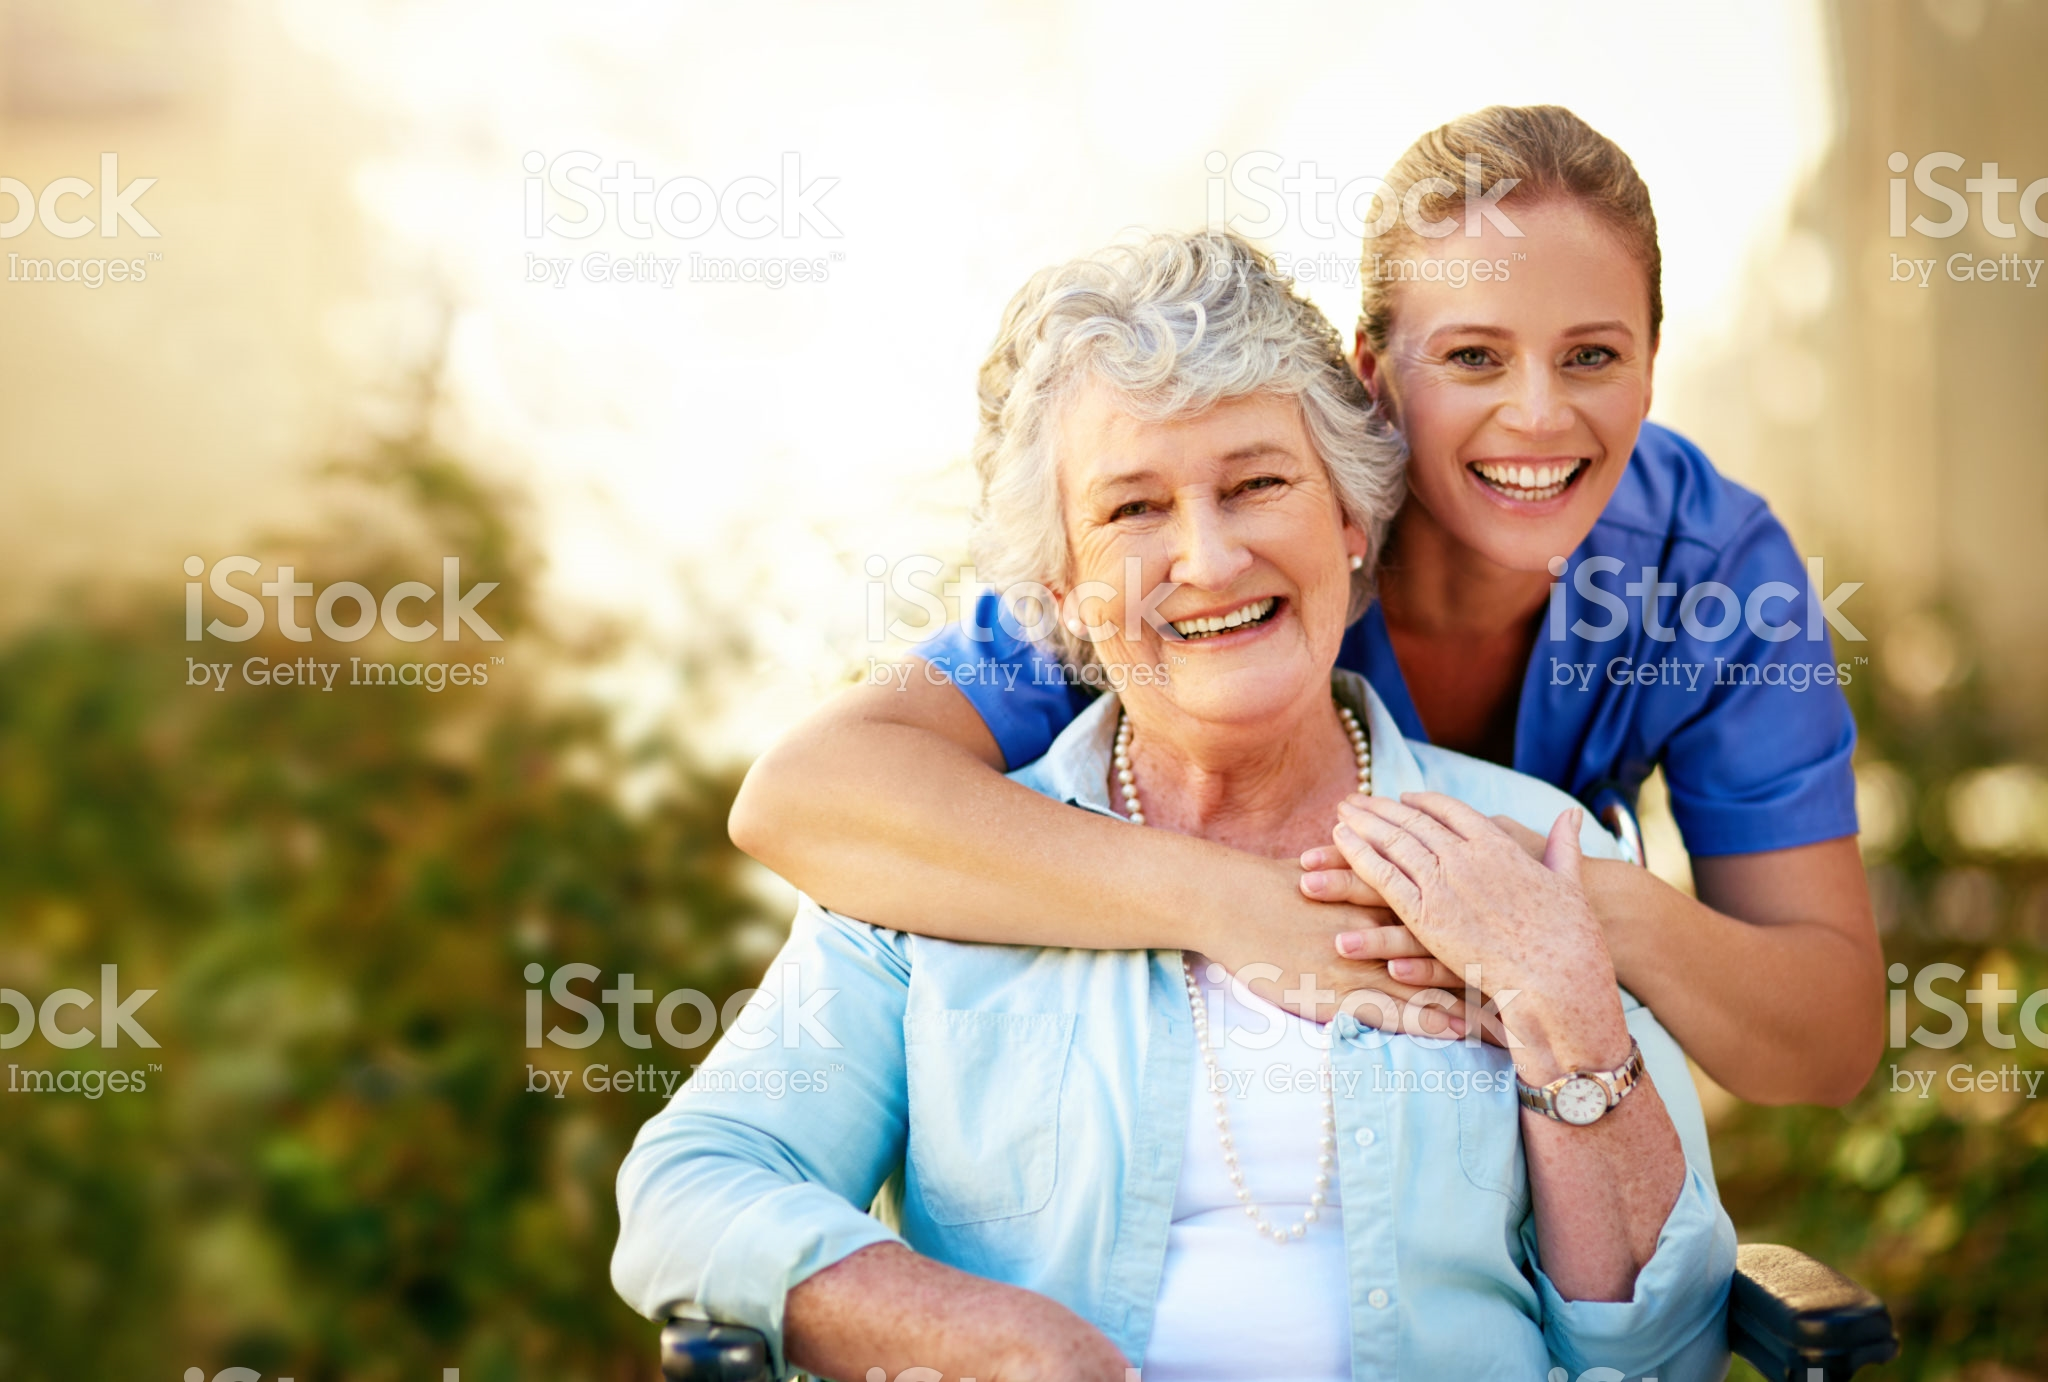 VC Web Section 6 istock#680410714